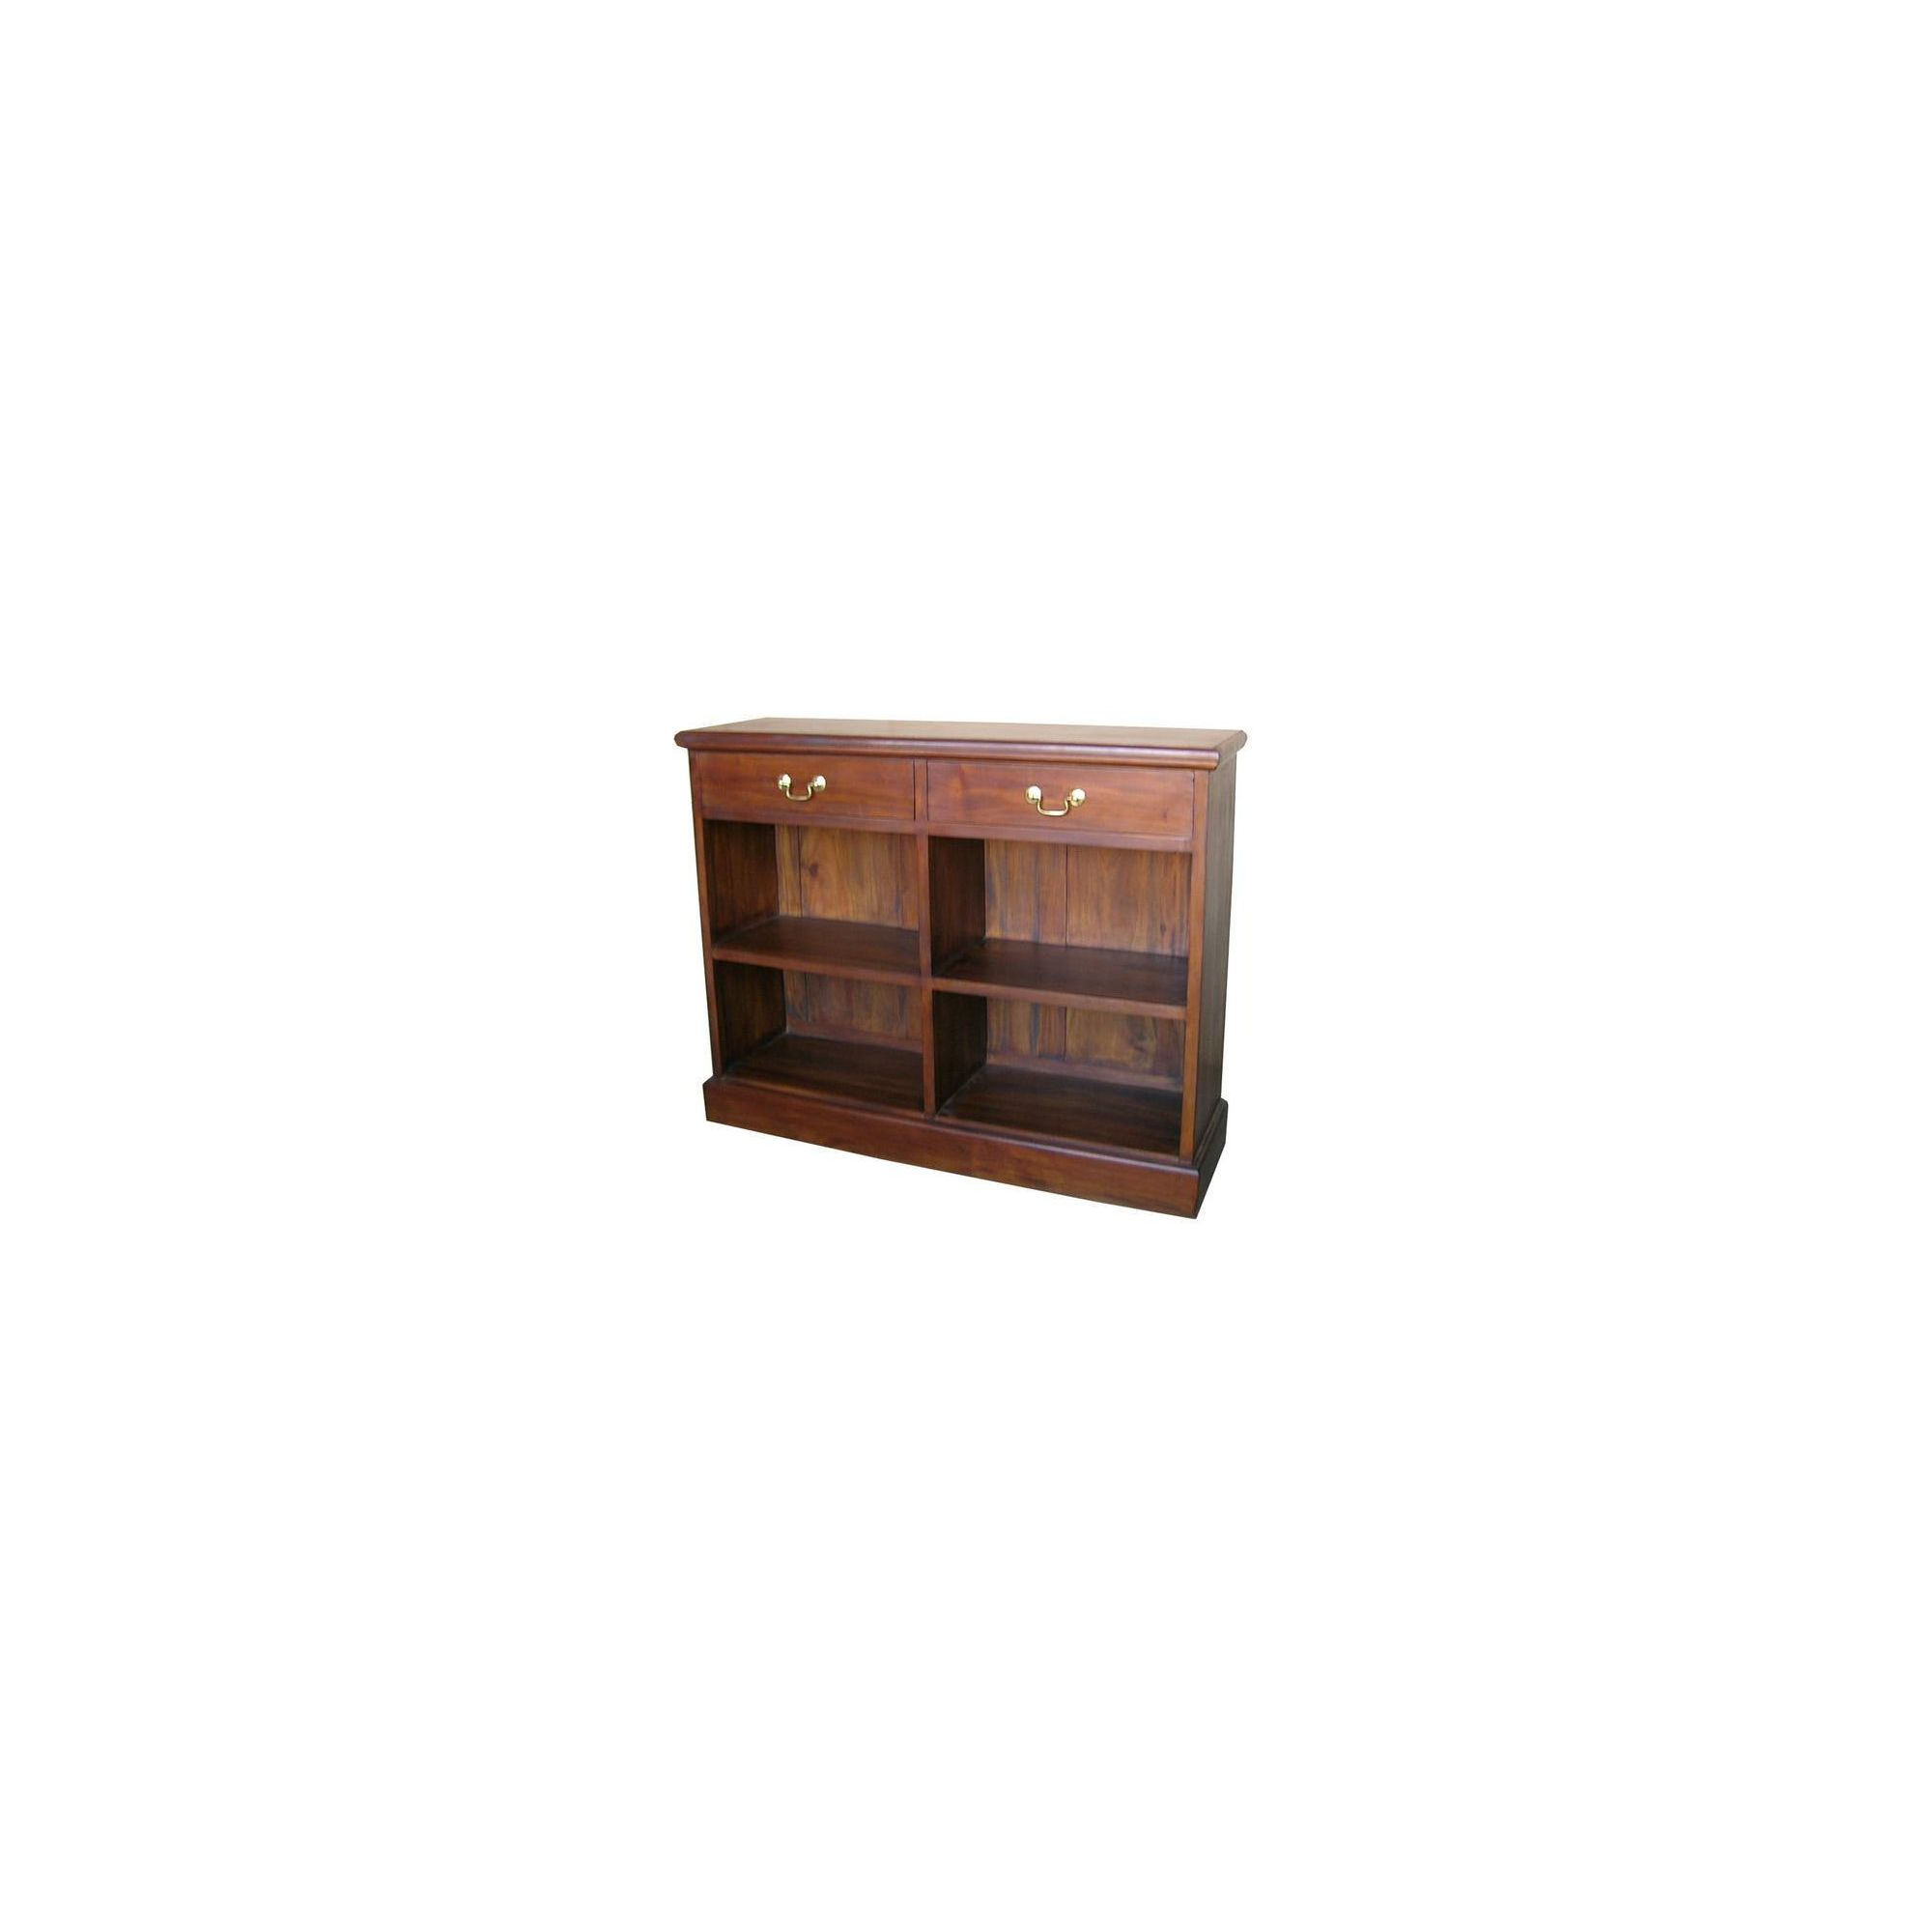 Lock stock and barrel Mahogany 2 Drawer Low Bookcase in Mahogany at Tesco Direct